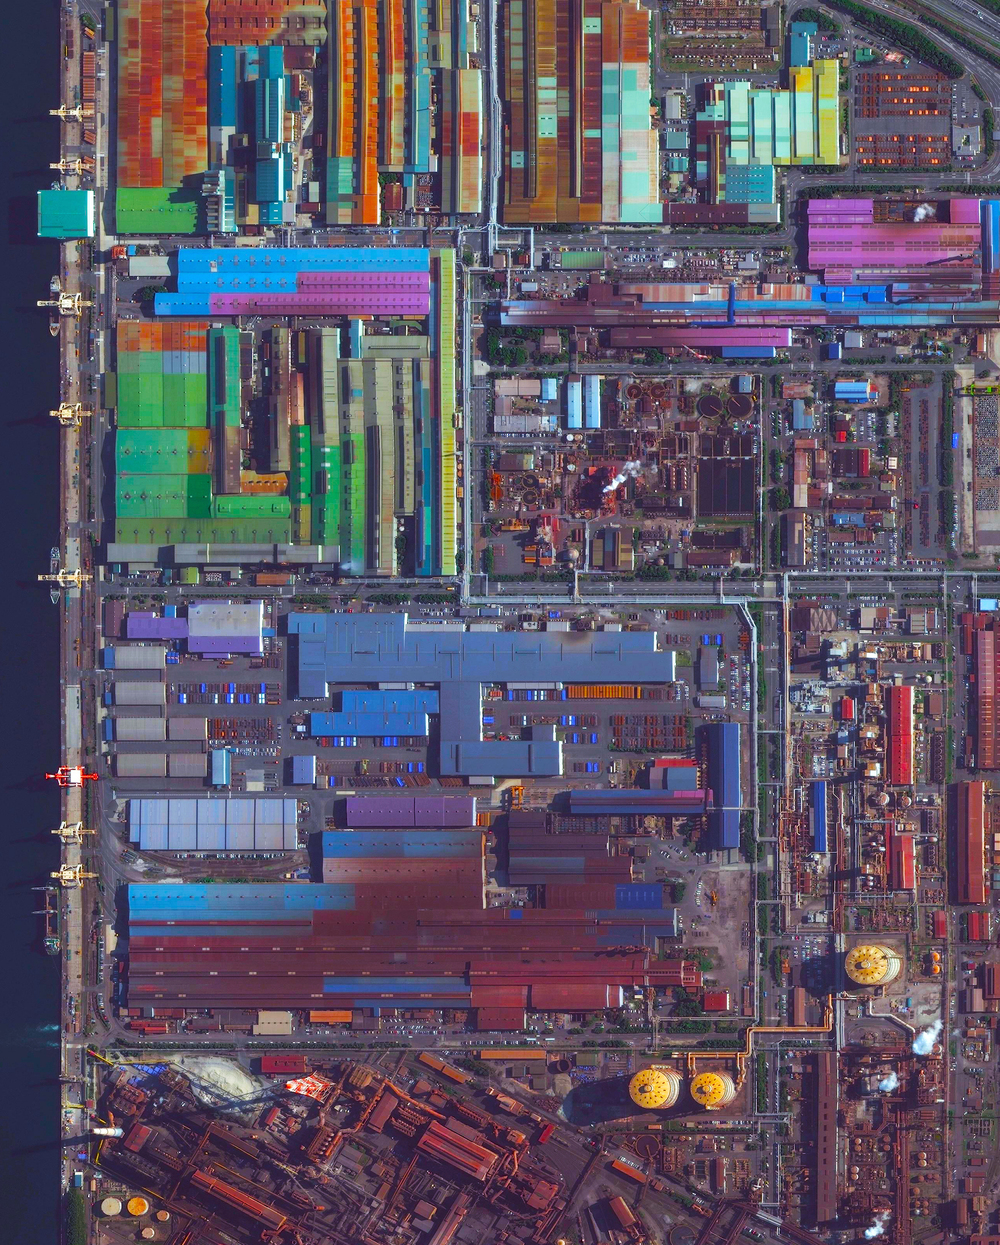 2/1/2016  Industrial buildings  Tokai, Japan  35.039460°, 136.889525°     Colorful, metal-roofed industrial buildings line the coast of Tokai, Japan. The city's economy is dominated by a massive steel mill - a portion of which is seen at the bottom of this Overview. Nippon Steel, the company that owns the mill, has an annual production of more than 47 million tons of steel across its various facilities. Steels - consisting of alloys of iron and other elements, primarily carbon - is a major component in buildings, infrastructure, tools, ships, automobiles, appliances, and weapons.